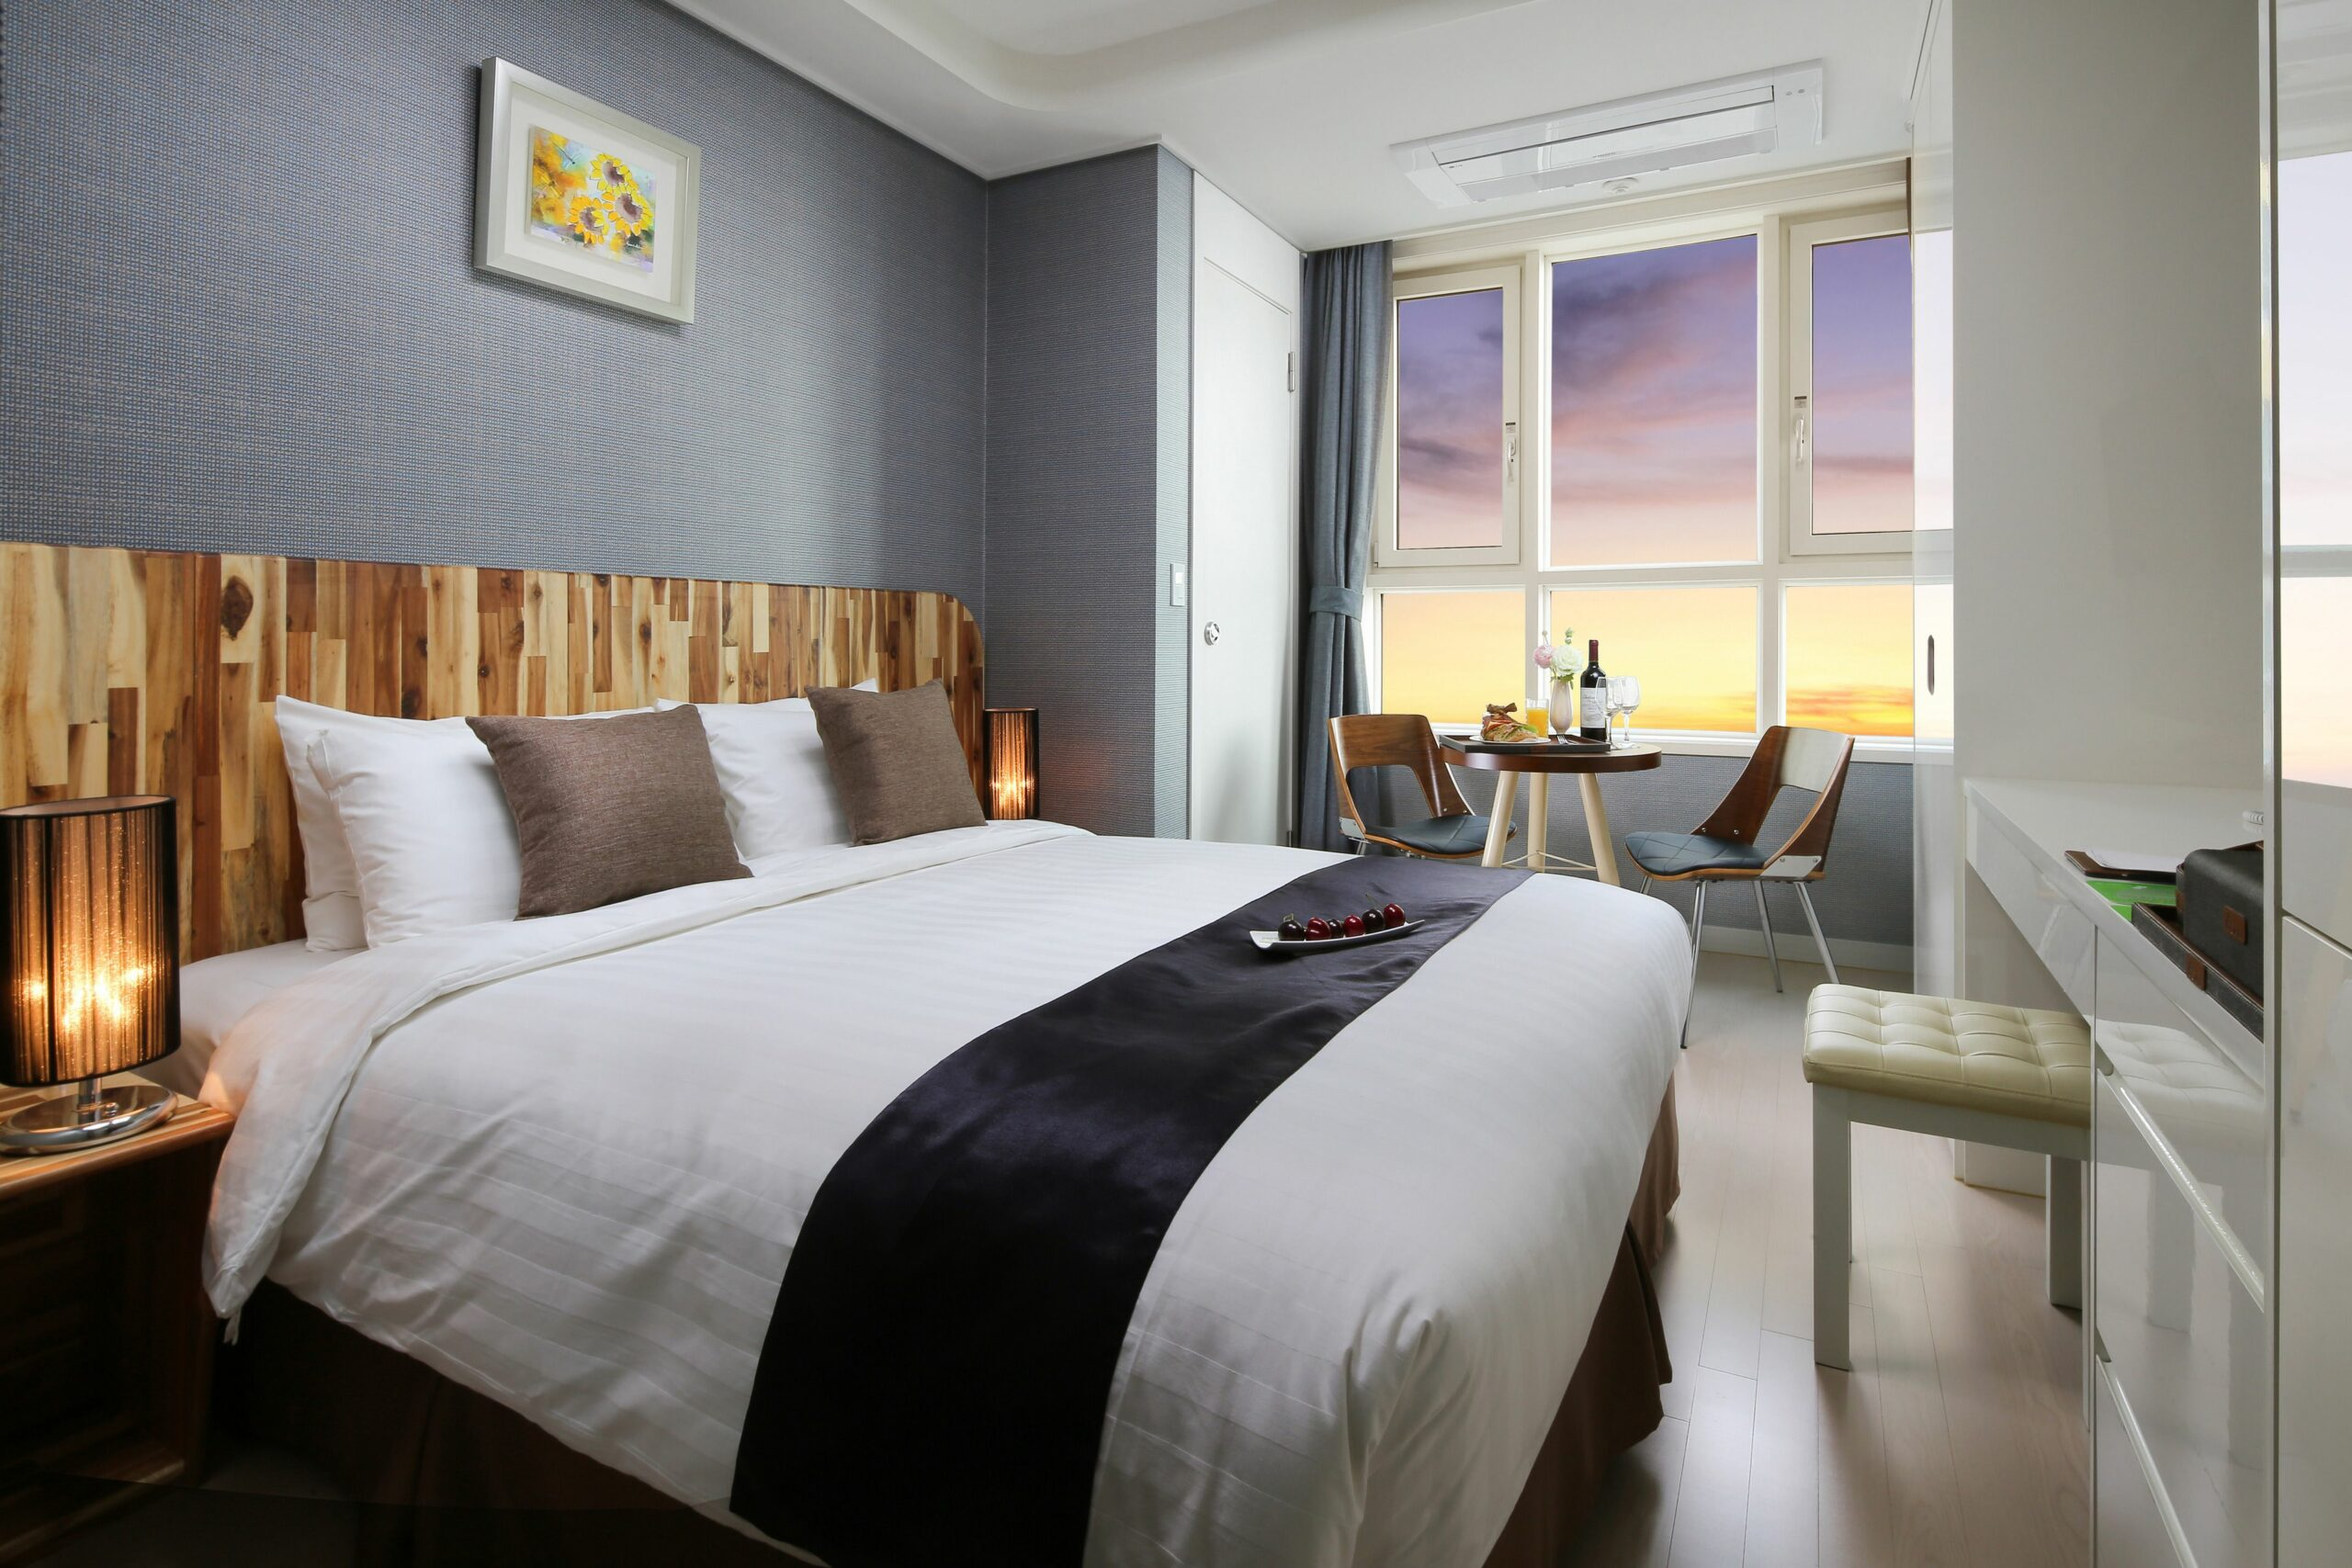 hotels in seoul Shinchon Ever8 Serviced Residence